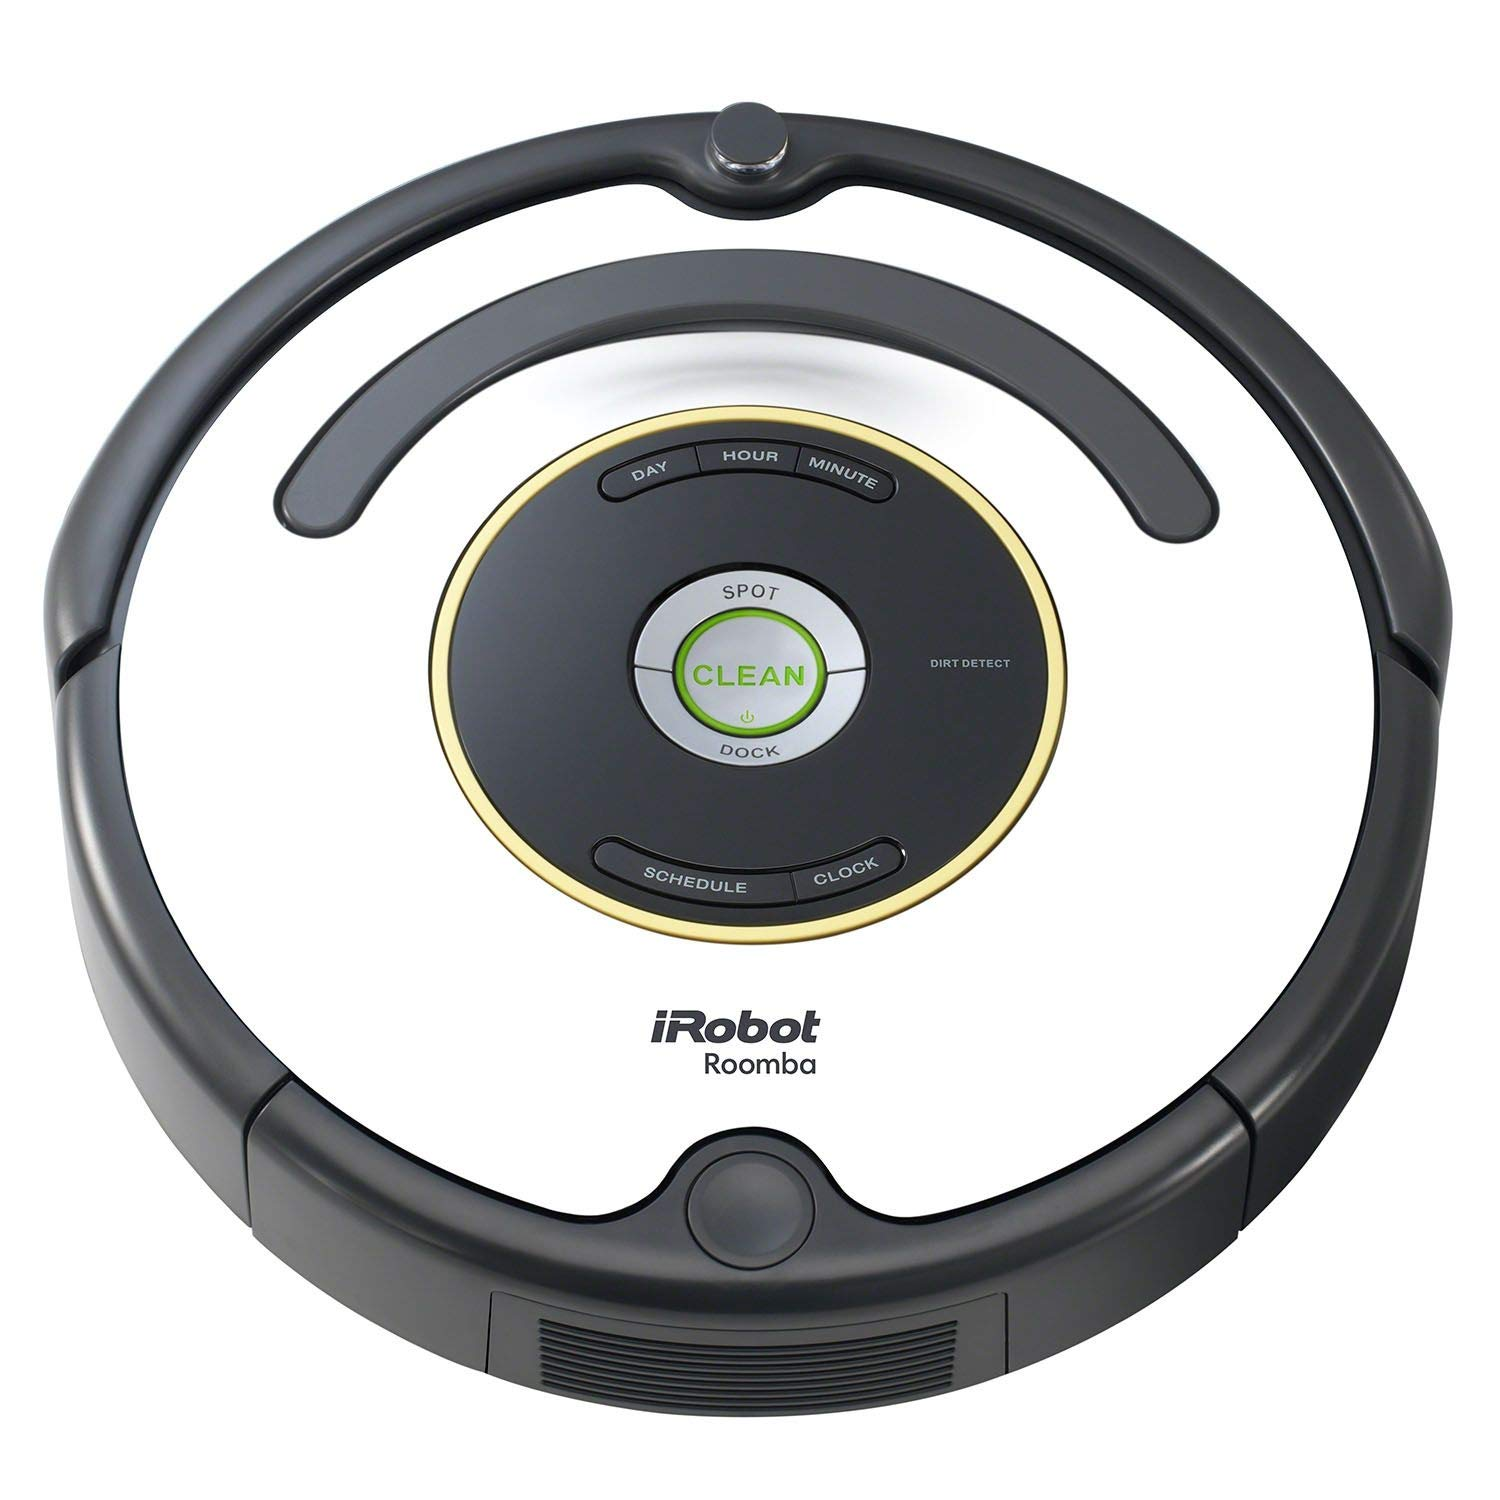 iRobot Roomba 665 In-Depth Review - Pros, Cons, Features and FAQs 1